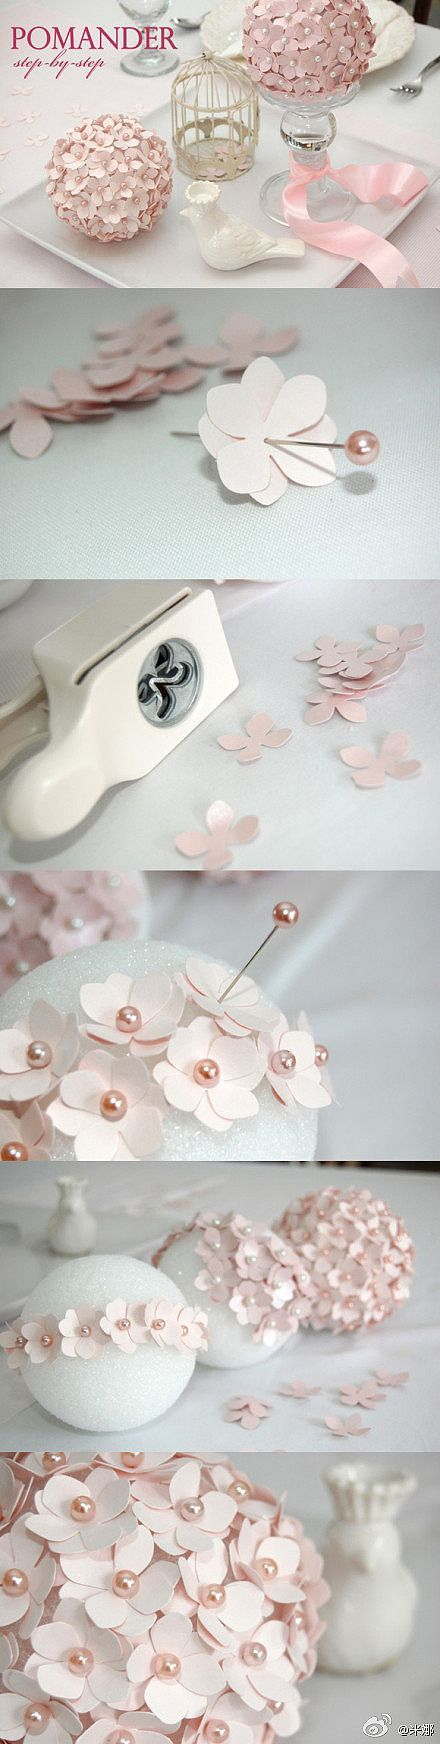 paper flower ball. don't know what I'd use it for, but it's cute!